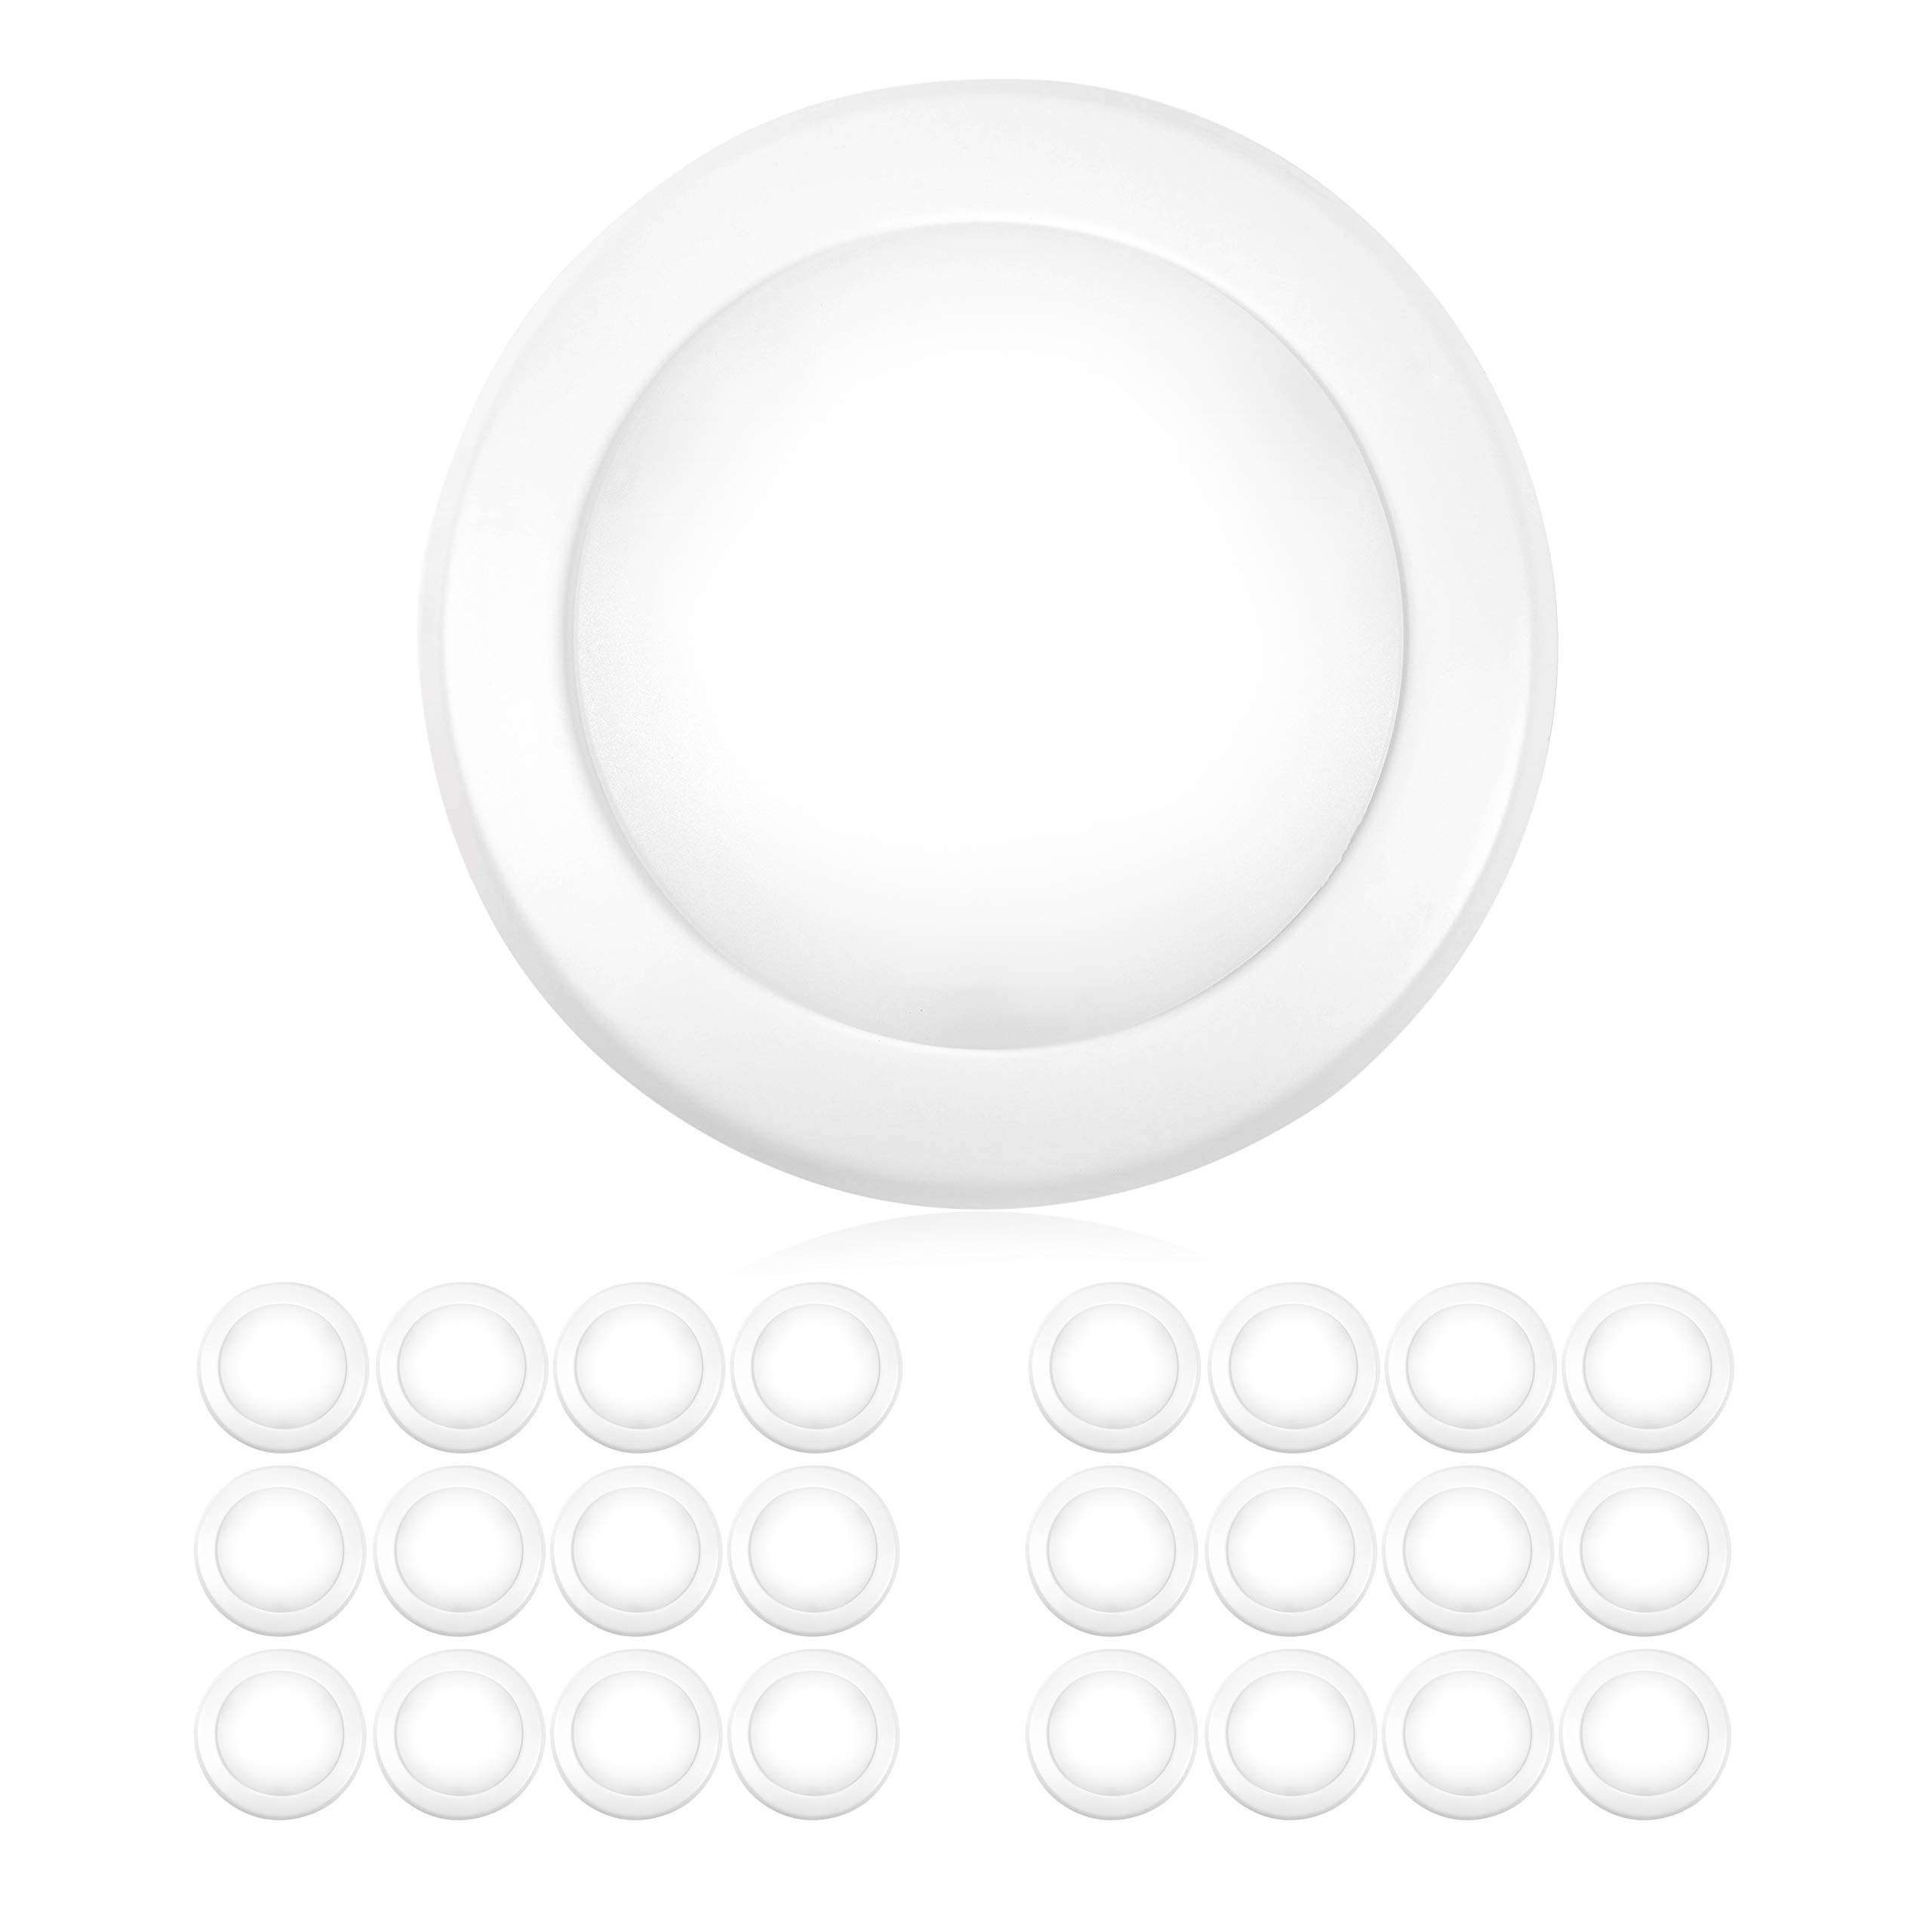 "Parmida (24 Pack) 5/6"" Dimmable LED Disk Light Flush Mount Recessed Retrofit Ceiling Lights, 15W (120W Replacement), 3000K (Soft White), Energy Star, Installs into Junction Box Or Recessed Can, 1050lm"